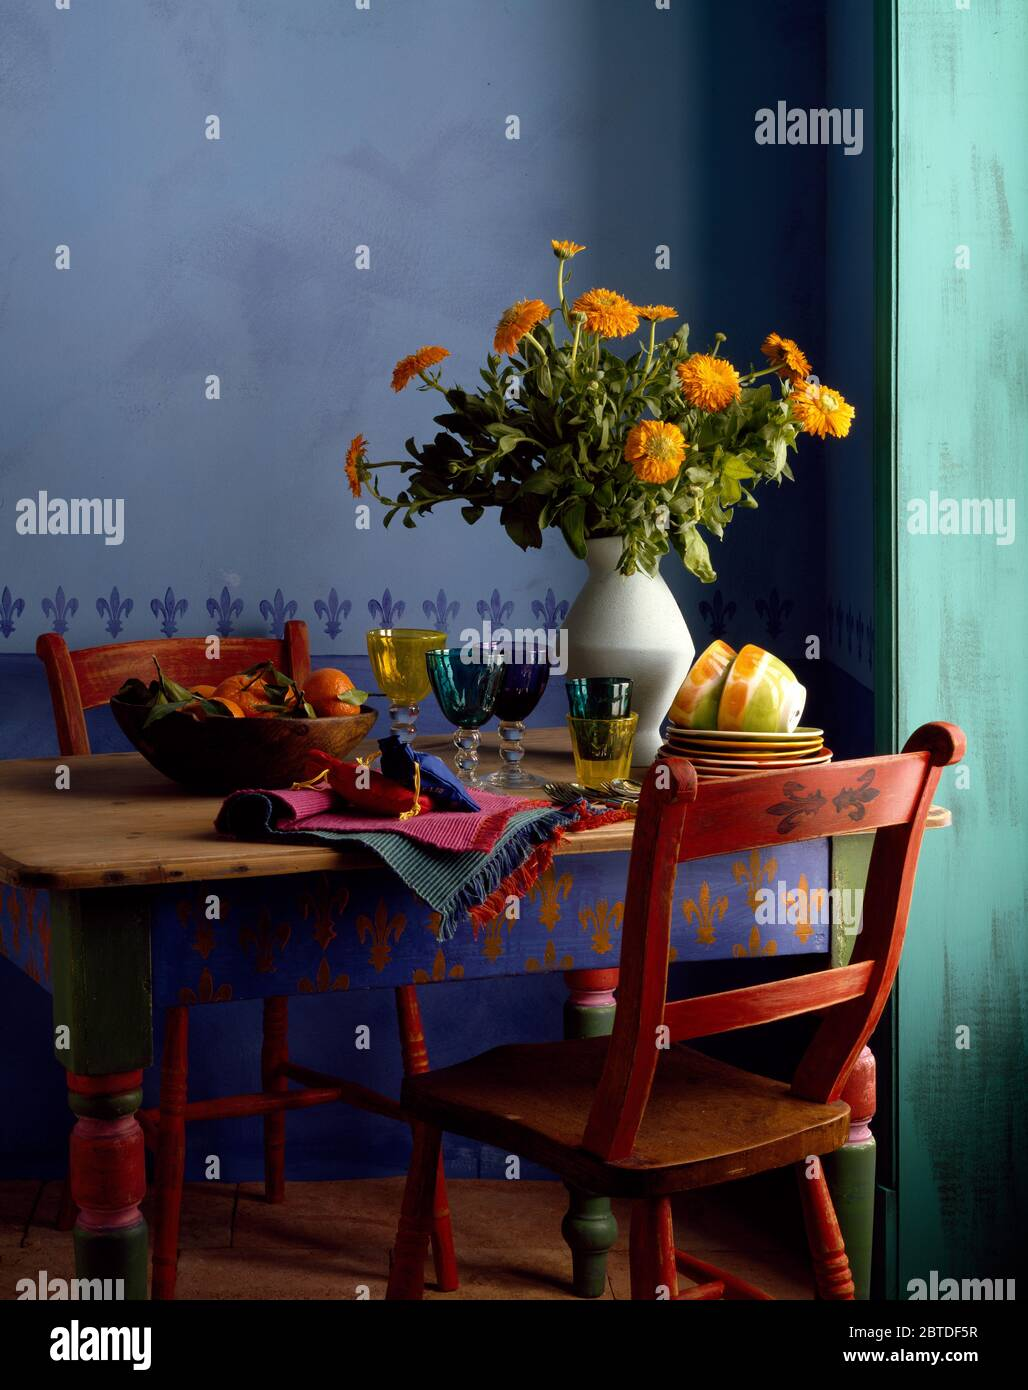 Painted Vintage Table And Chair In Blue Economy Dining Room Stock Photo Alamy